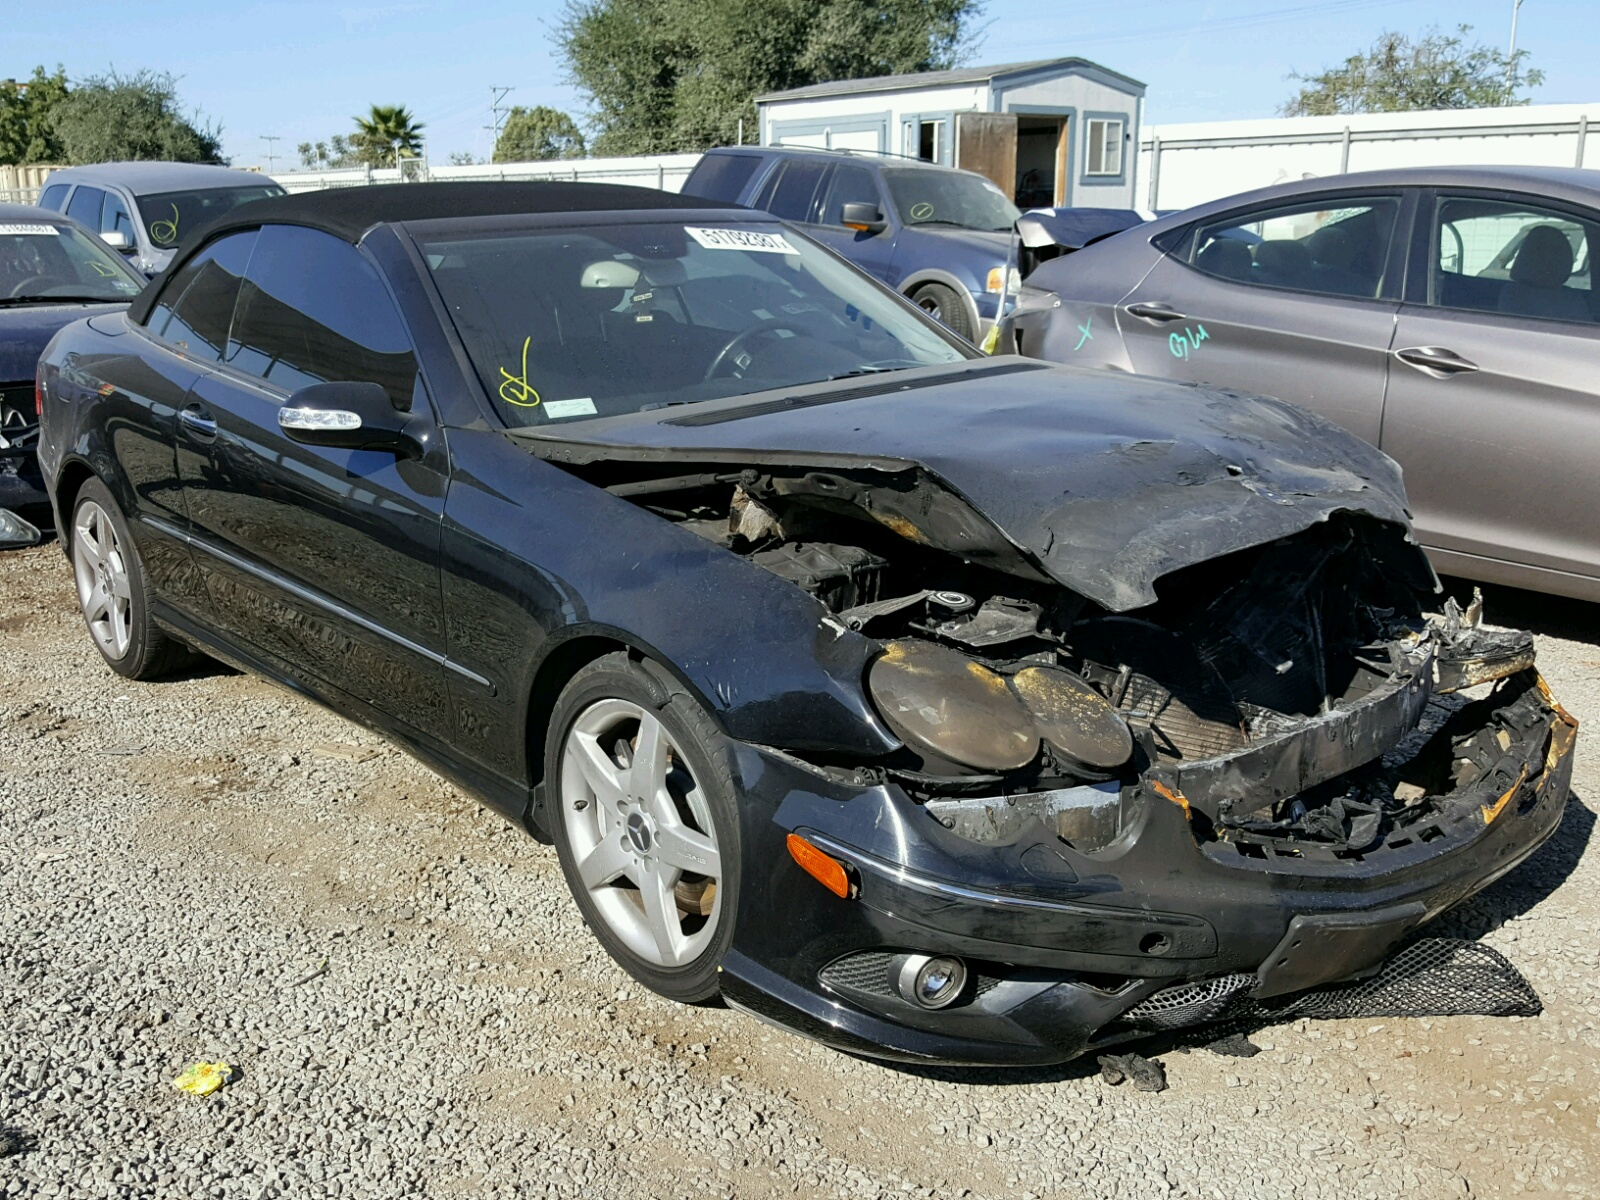 2006 mercedes benz clk 500 burn engine damage rh autoauctions io 2005 mercedes clk 500 owners manual mercedes benz cls 500 owners manual